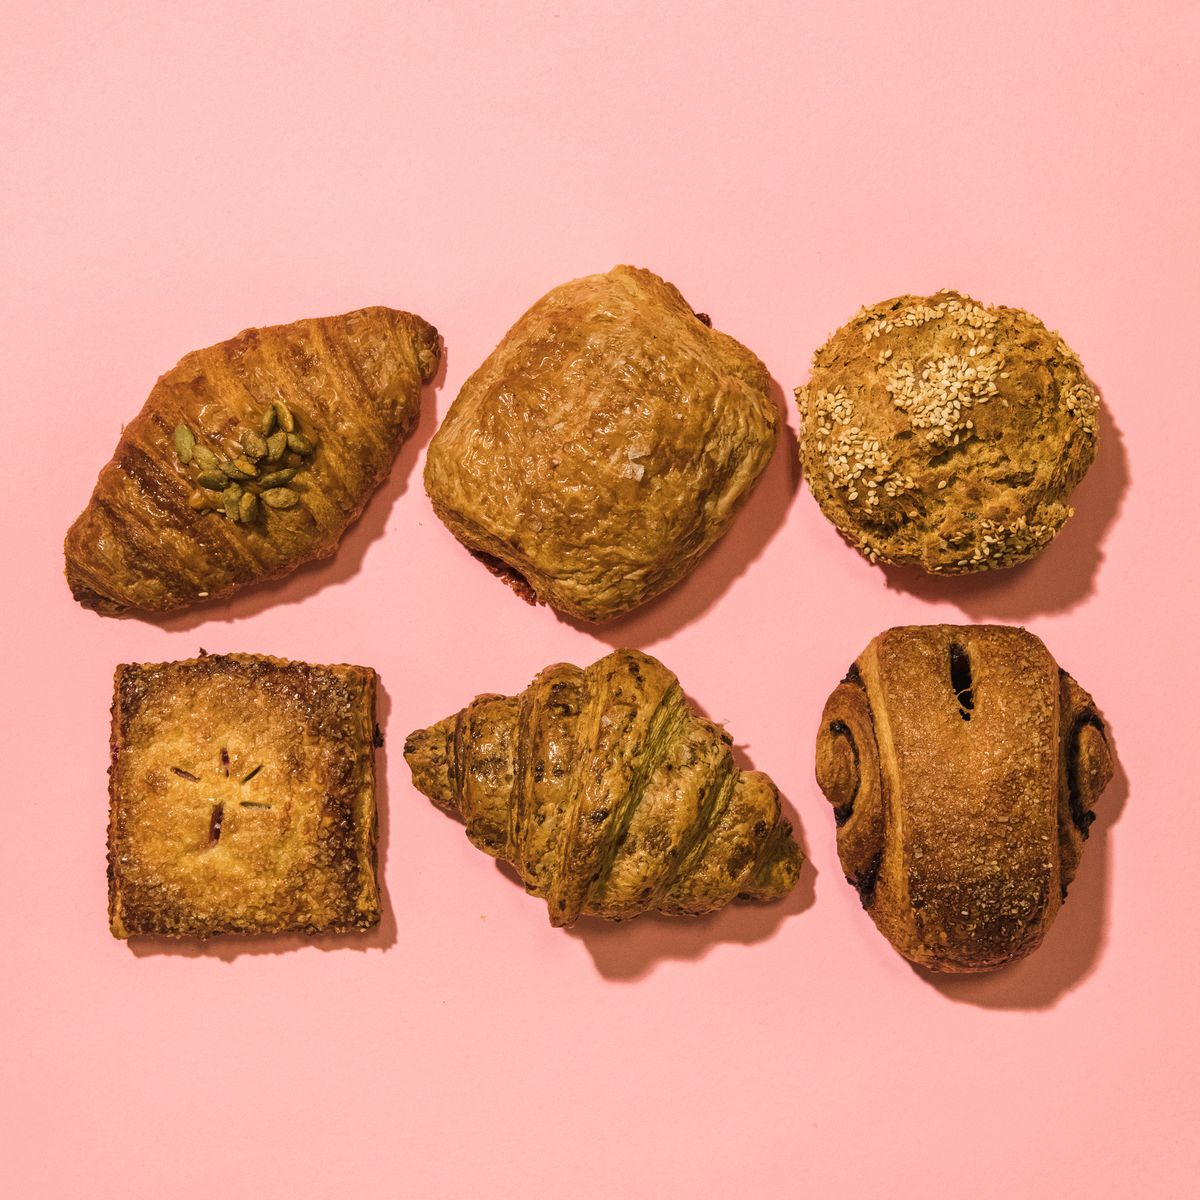 Six breakfast pastries laid out in two rows of three on a pink background